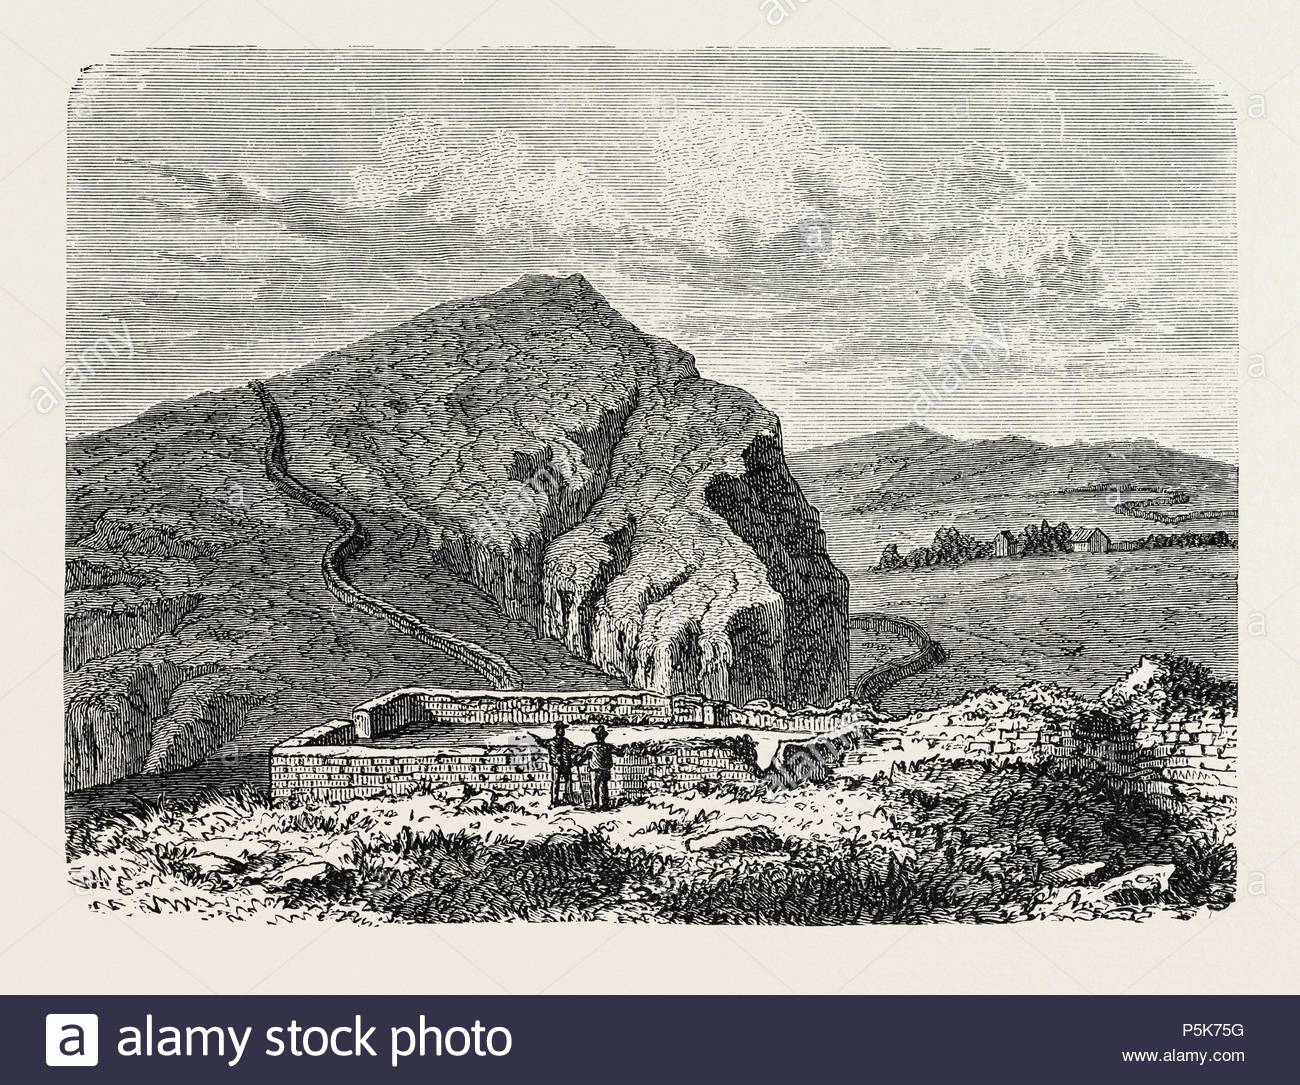 THE ROMANS IN BRITAIN : REMAINS OF THE WALL OF SEVERUS. - Stock Image